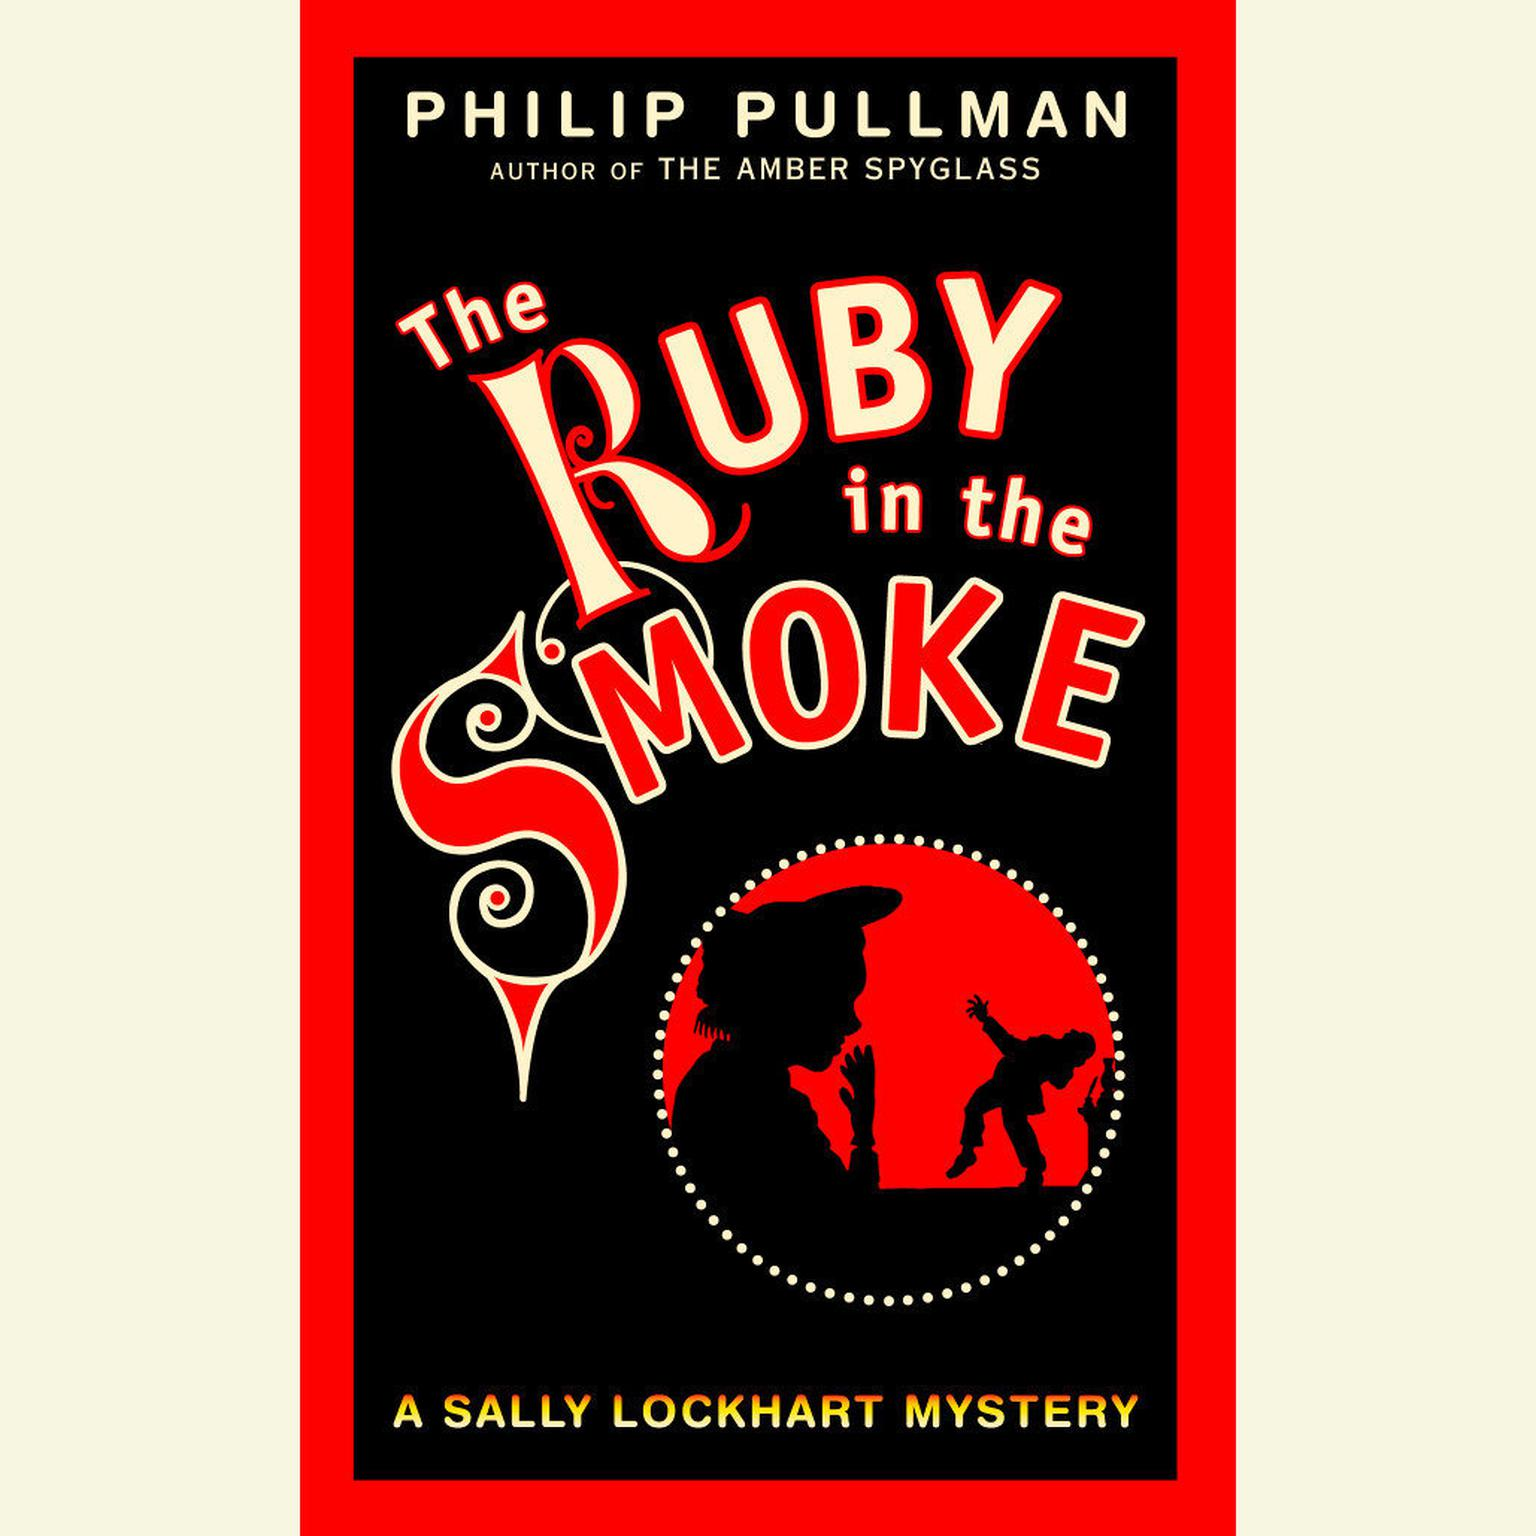 Printable A Sally Lockhart Mystery: The Ruby In the Smoke: Book One Audiobook Cover Art